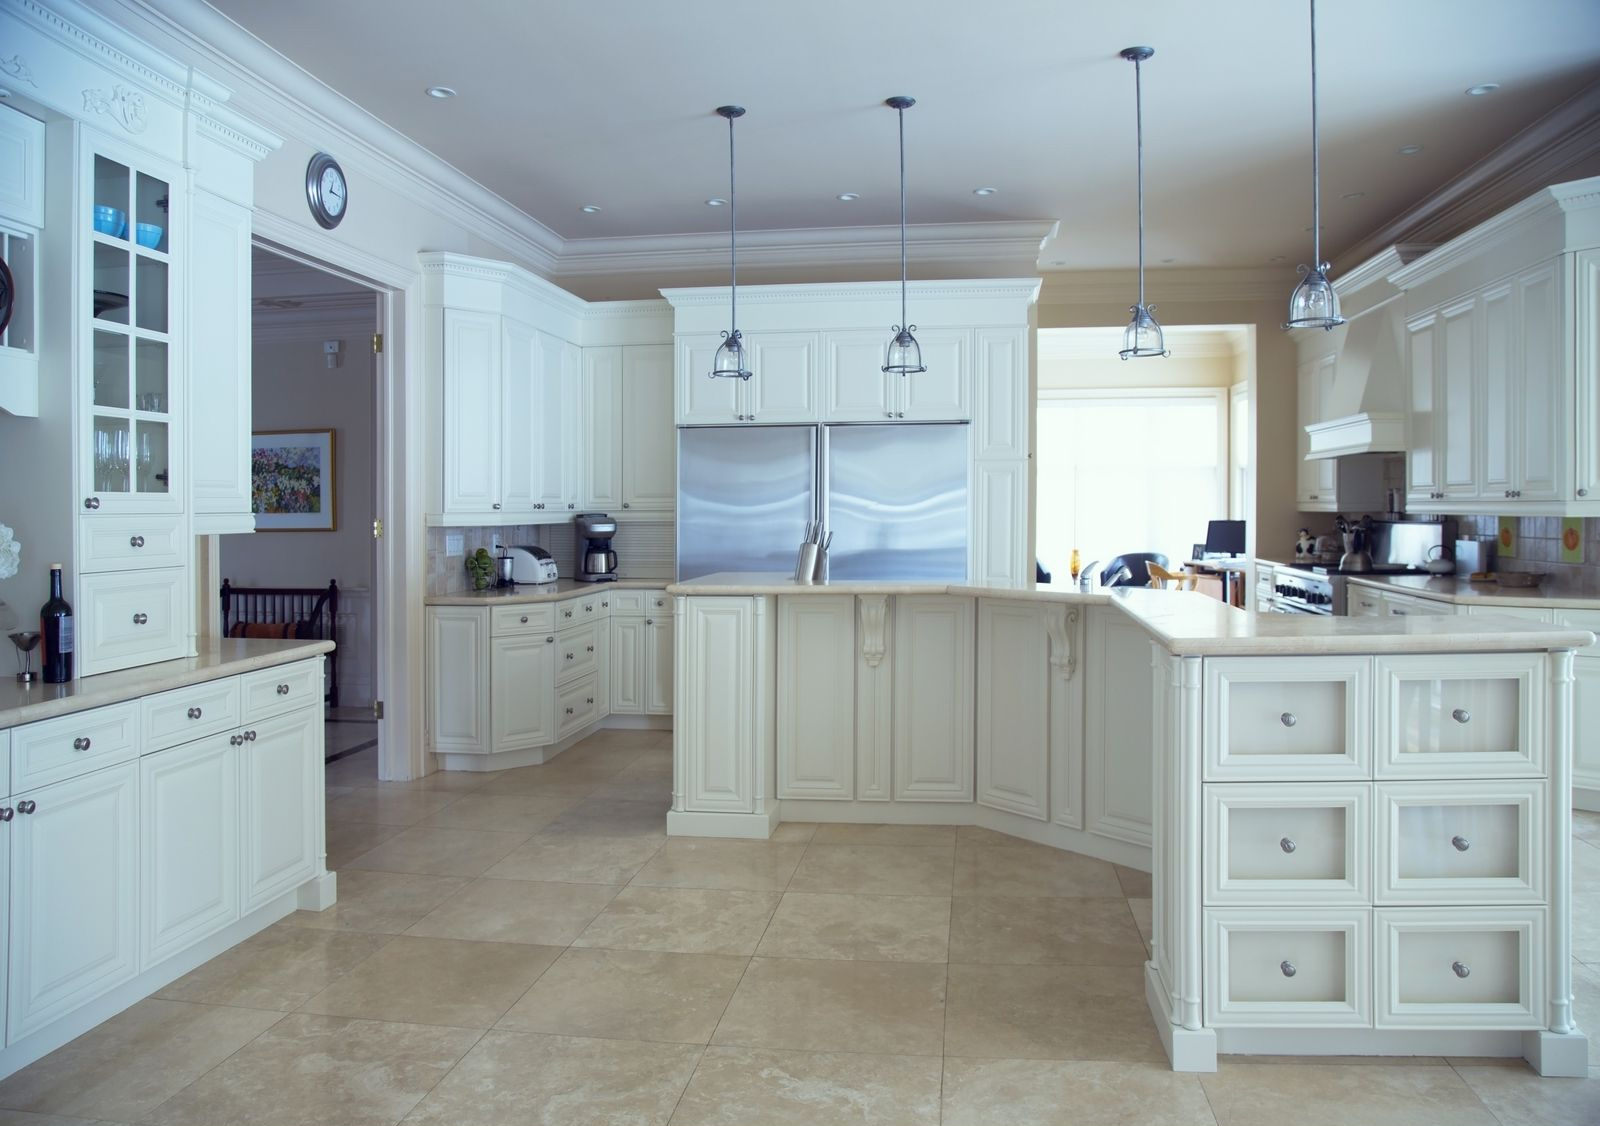 Amazing Before And After Kitchen Cabinet Refinishing Transformation